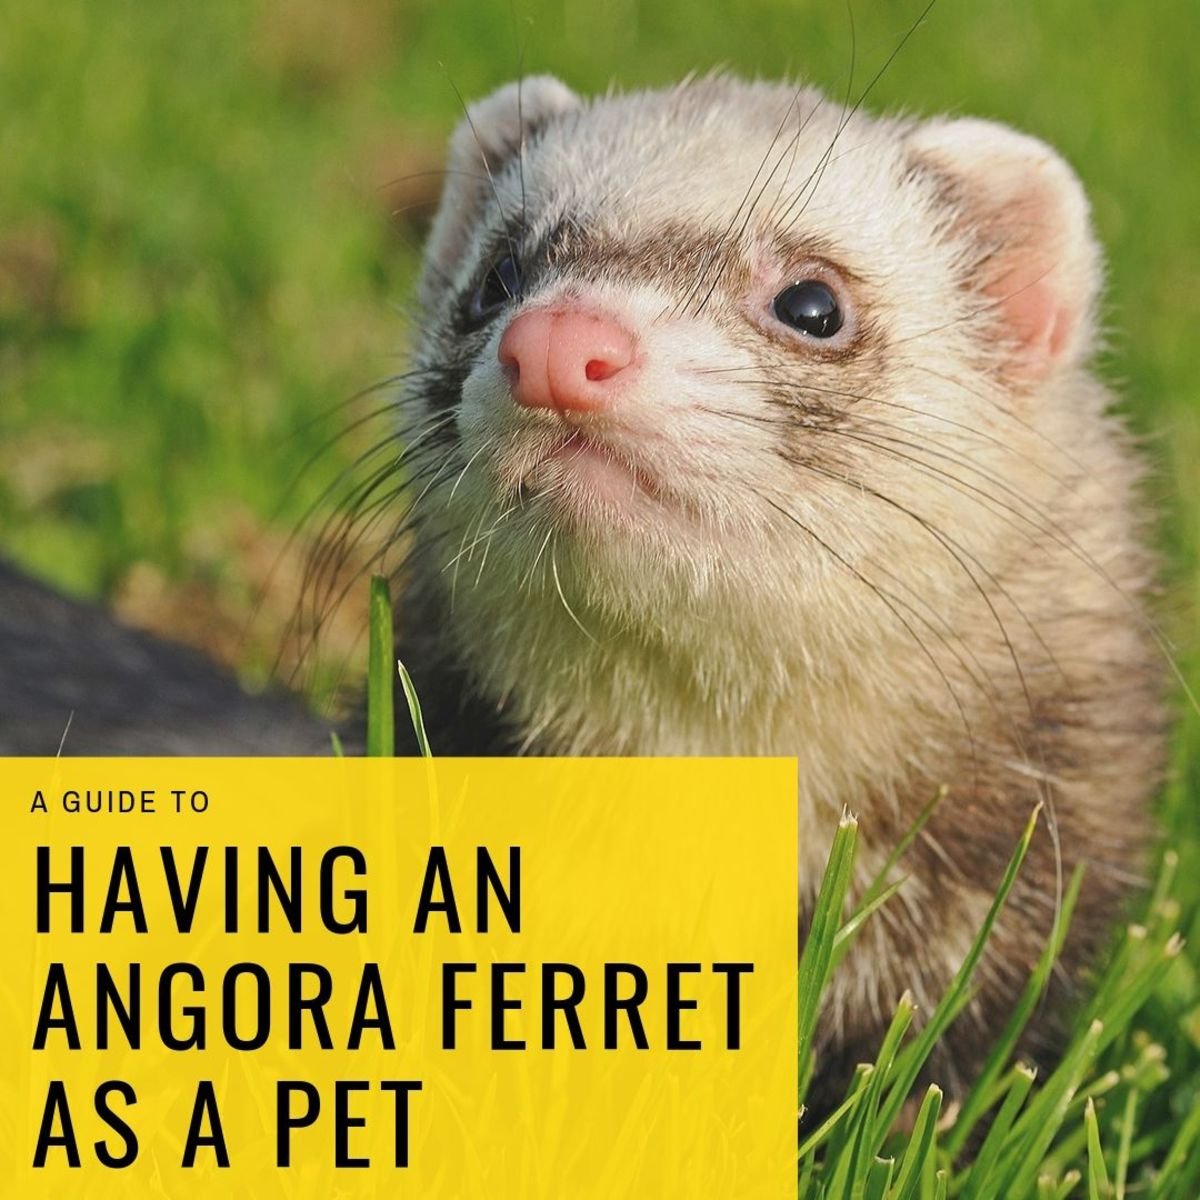 How to Care for Your Angora Ferret